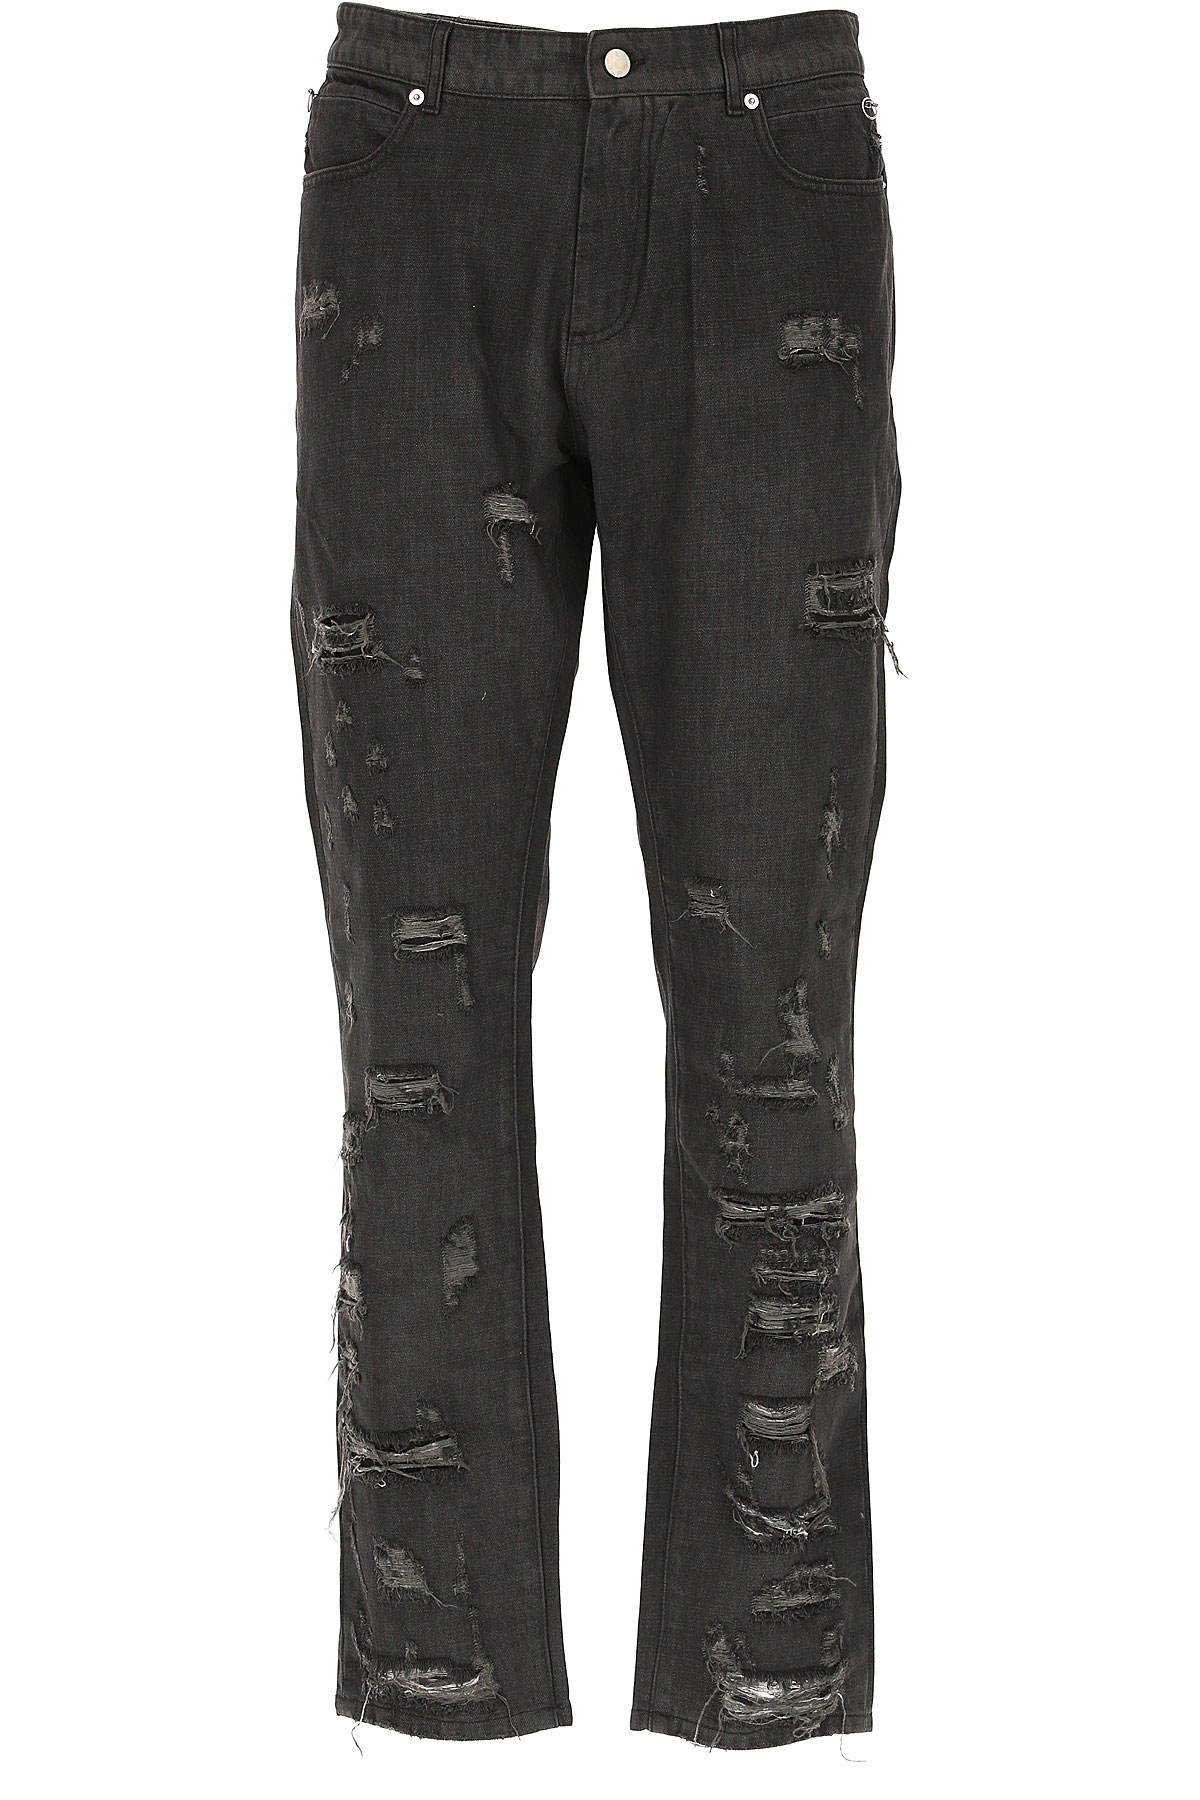 ALYX Jeans On Sale in Outlet, Black, Cotton, 2019, 32 34